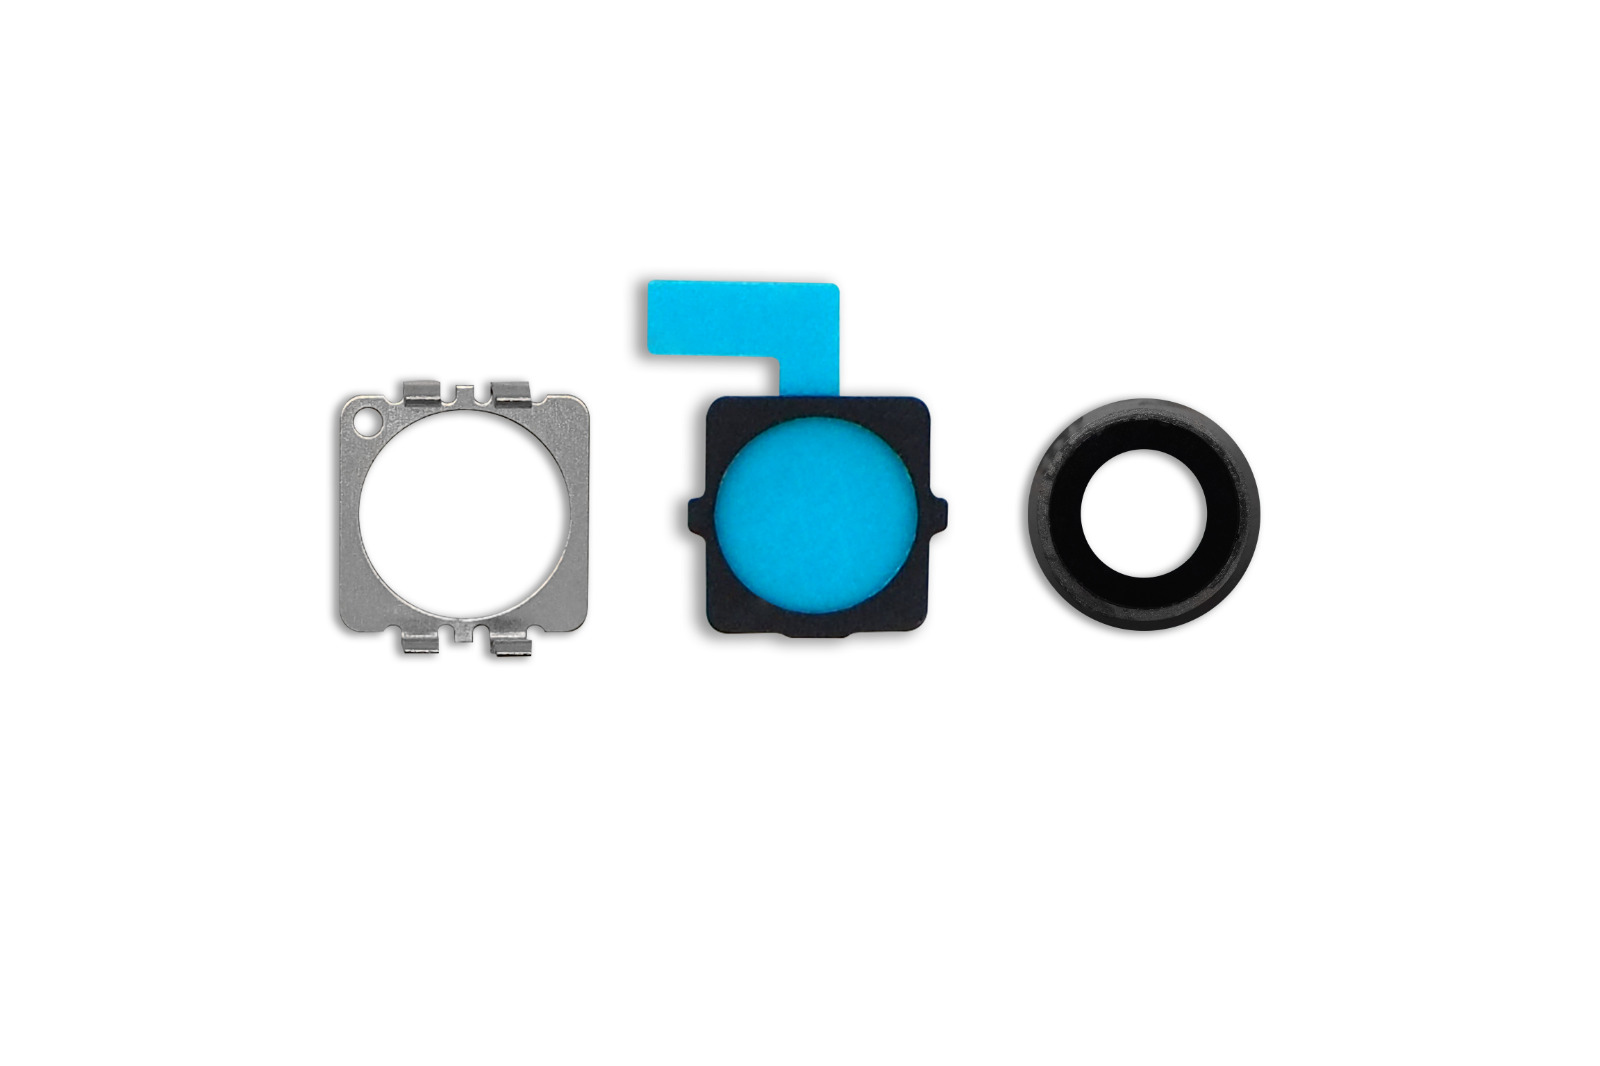 IPHONE 6S KAMERA Linse Glas Camera Lens Glass Halter Dichtung Gasket ...